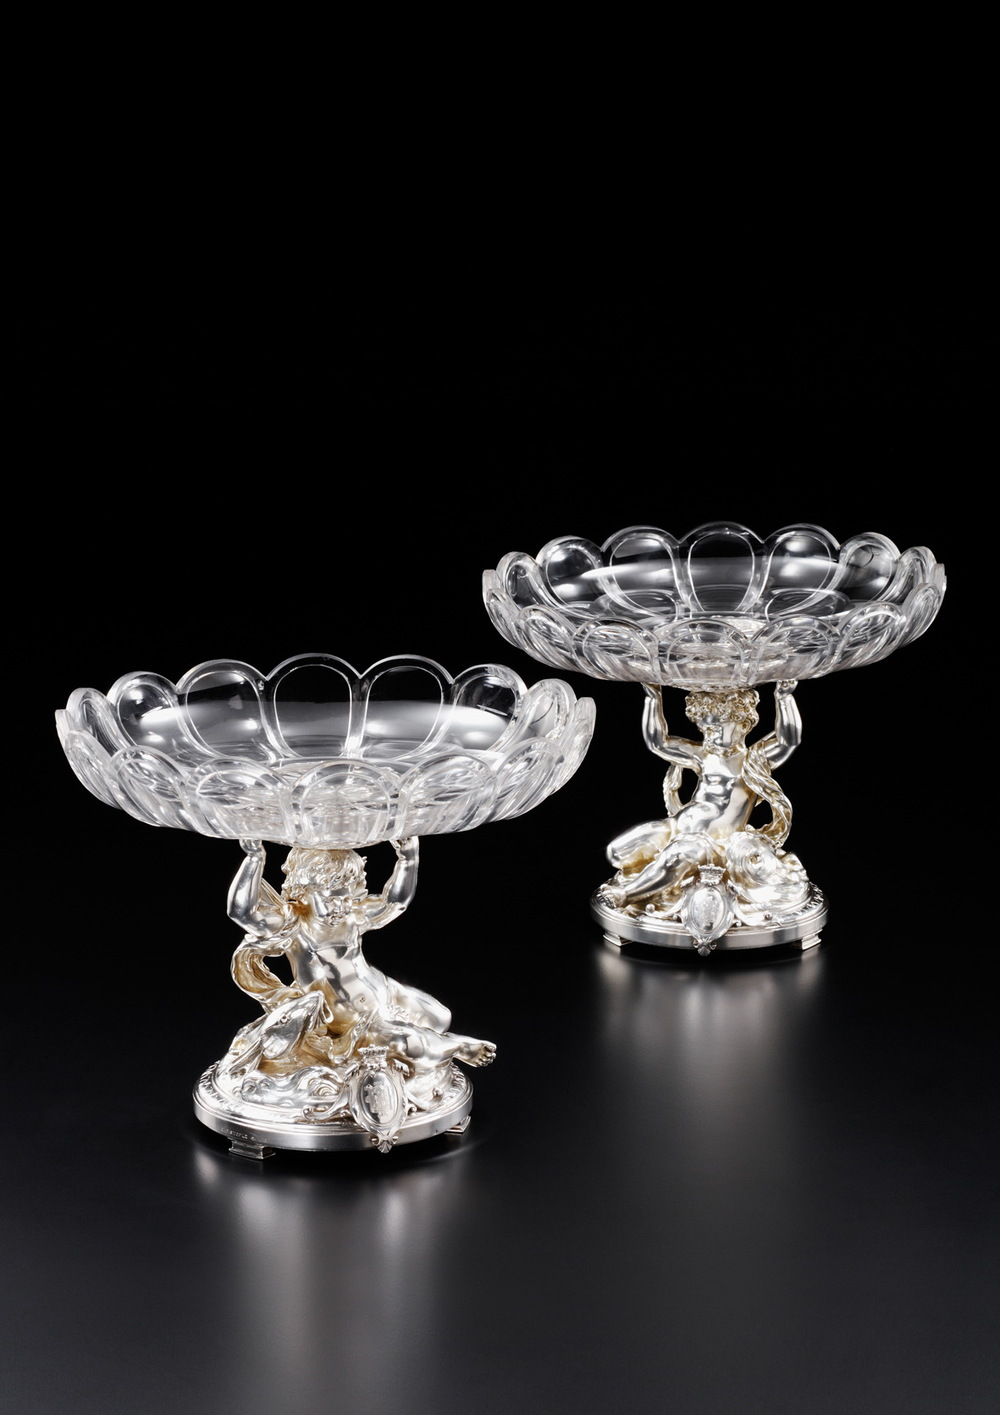 CHRISTOFLE & CIE     A pair of circular table centrepieces      Paris, circa 1870    Silver and glass    Representing a winged angel hanging in a shell holding a   small dish in cut glass, and a fish swimming beside. The base is ornamented with a medallion with an engraved arms of a   Spanish Marquis    15.8 x 16.2 cm    Weight 2468 gr.